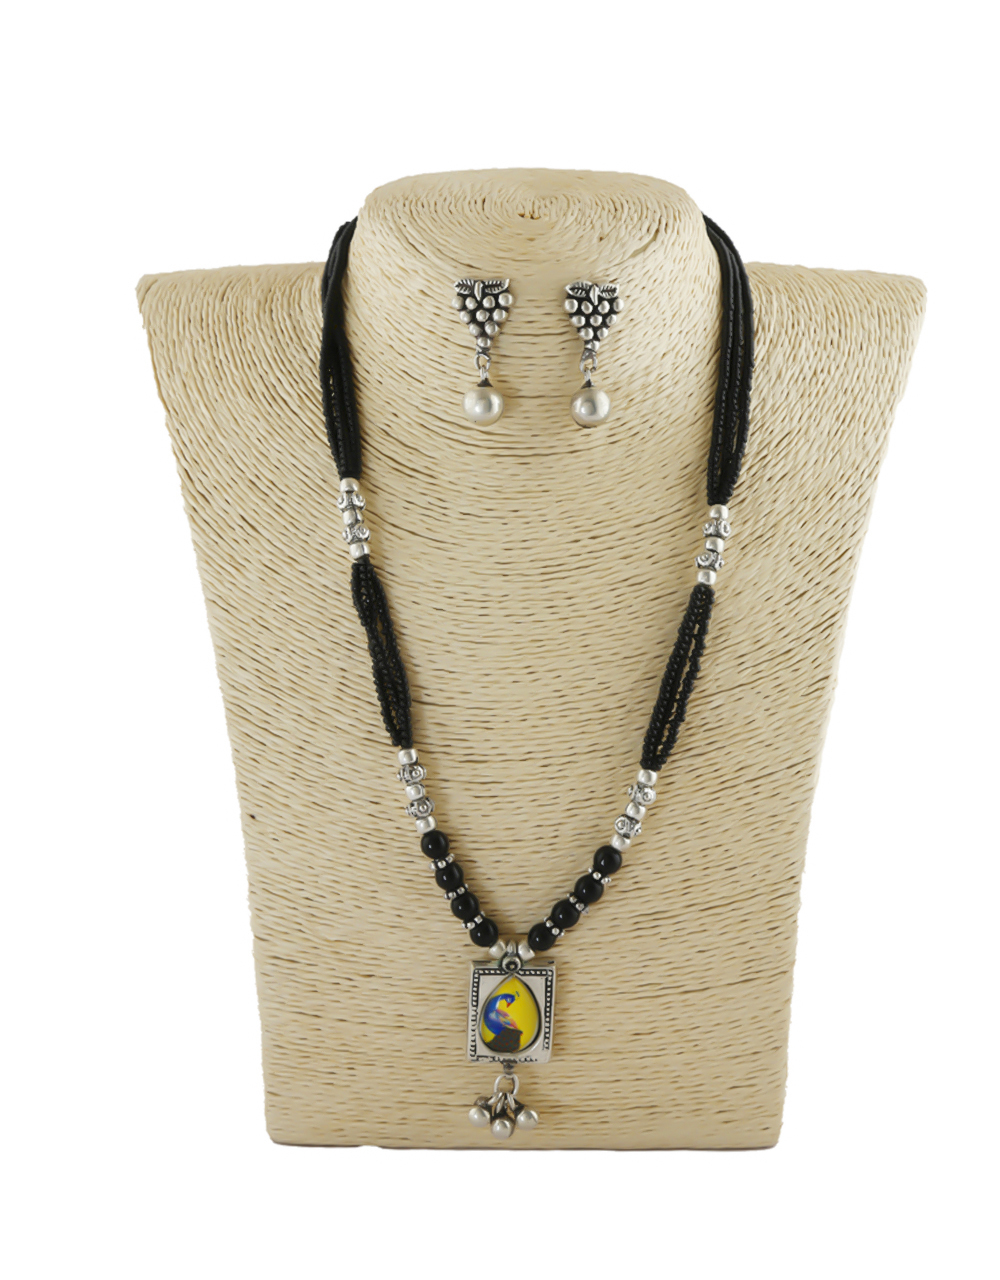 Peacock Design Silver Oxidized Finish Trendy Mangalsutra